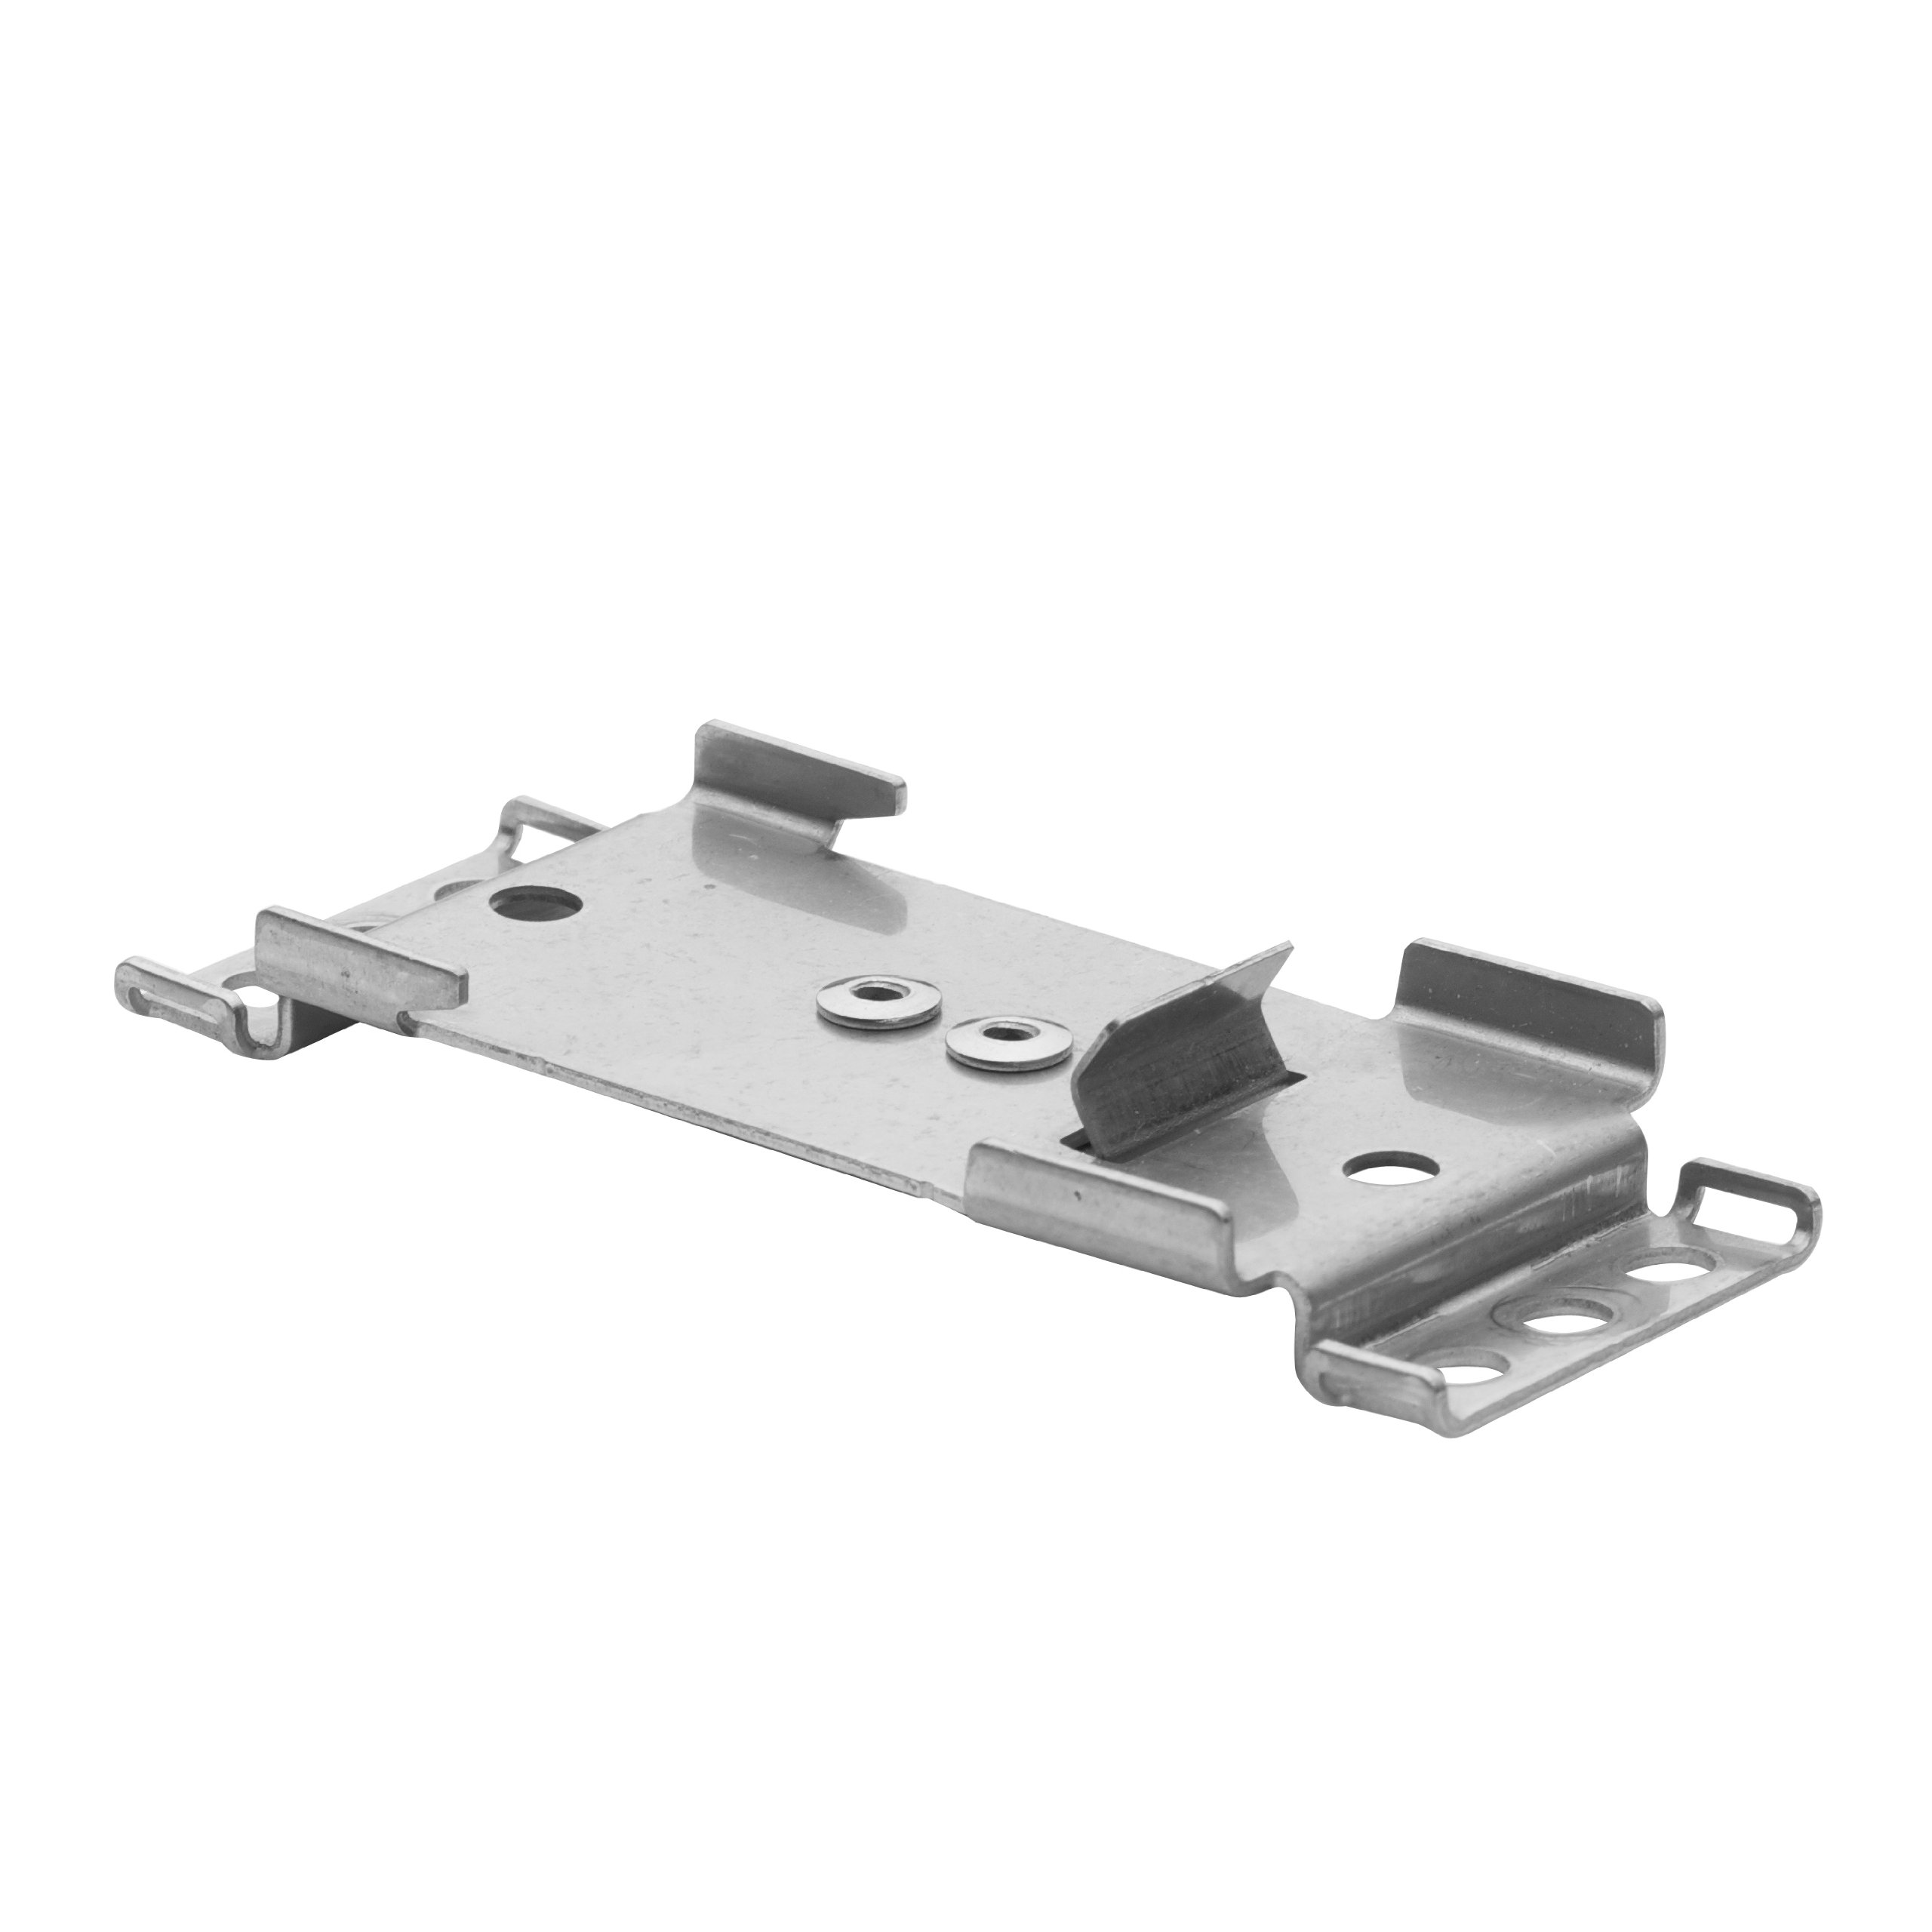 Axis, T91a03 Din Rail Clip Din Rail Clip For Axis, Q7411 Video Encoder, Q7424-R Video Encoder ''Product Category: Networking/Camera Mounts & Enclosures''